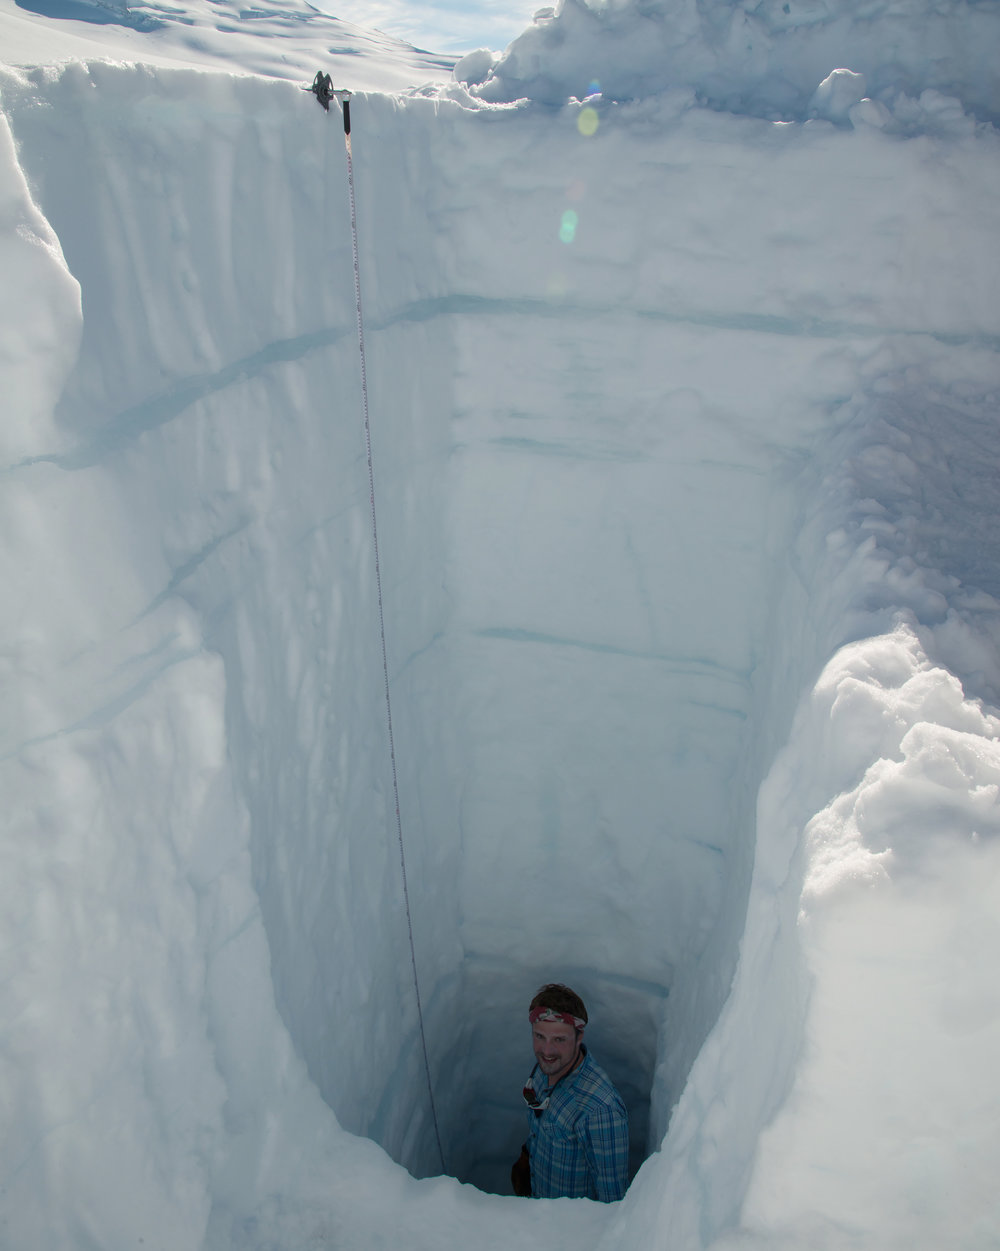 Student excavates the bottom step of a snow pit through the last year's snow accumulation. PC: Ben Huff